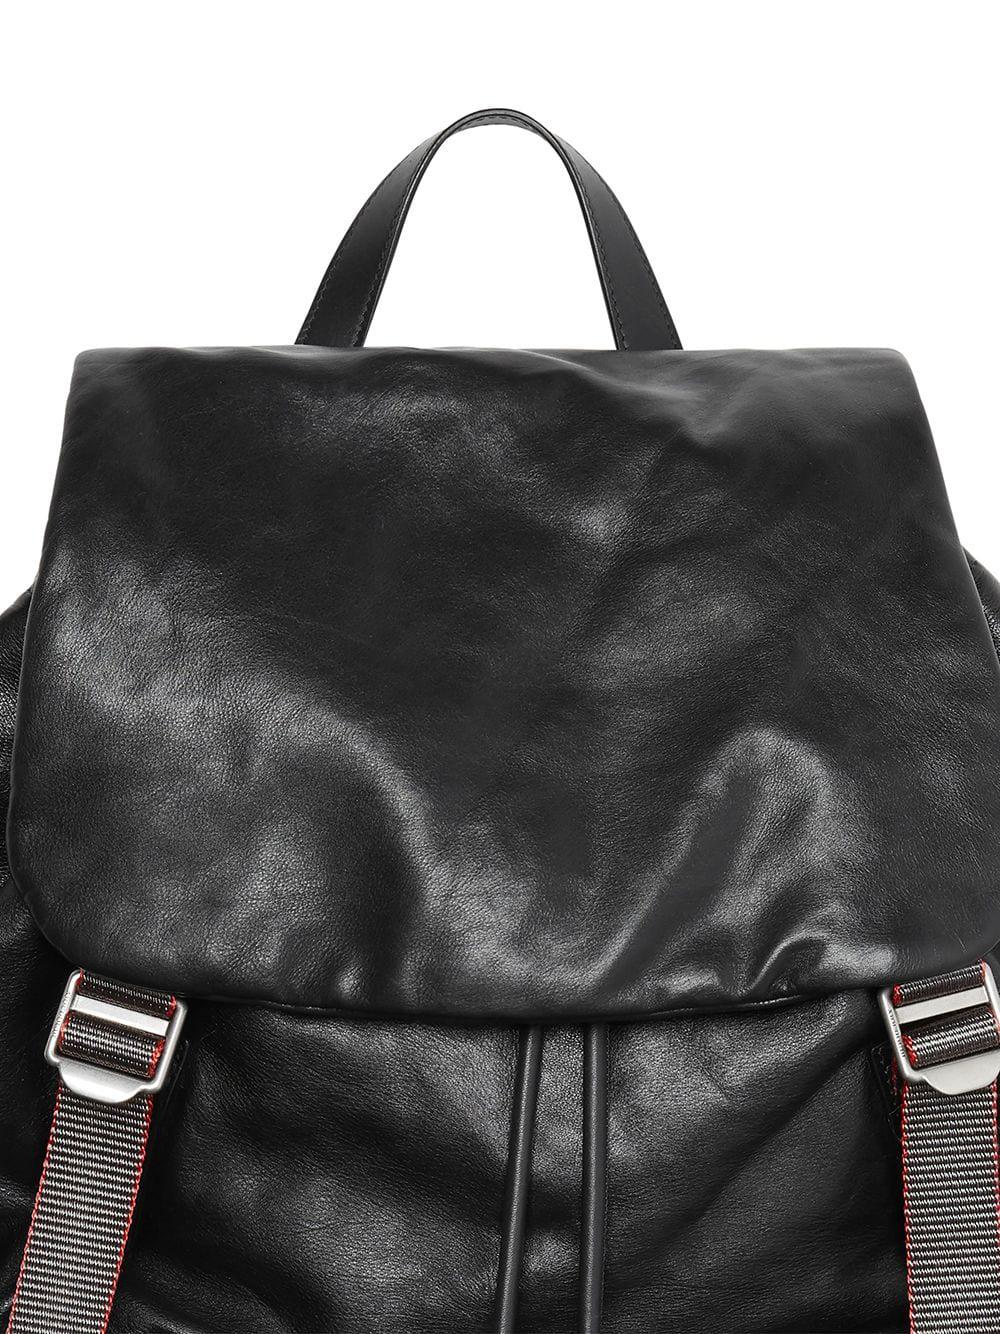 92b2ae897cf5 Burberry - Black The Extra Large Rucksack In Nappa Leather for Men - Lyst.  View fullscreen